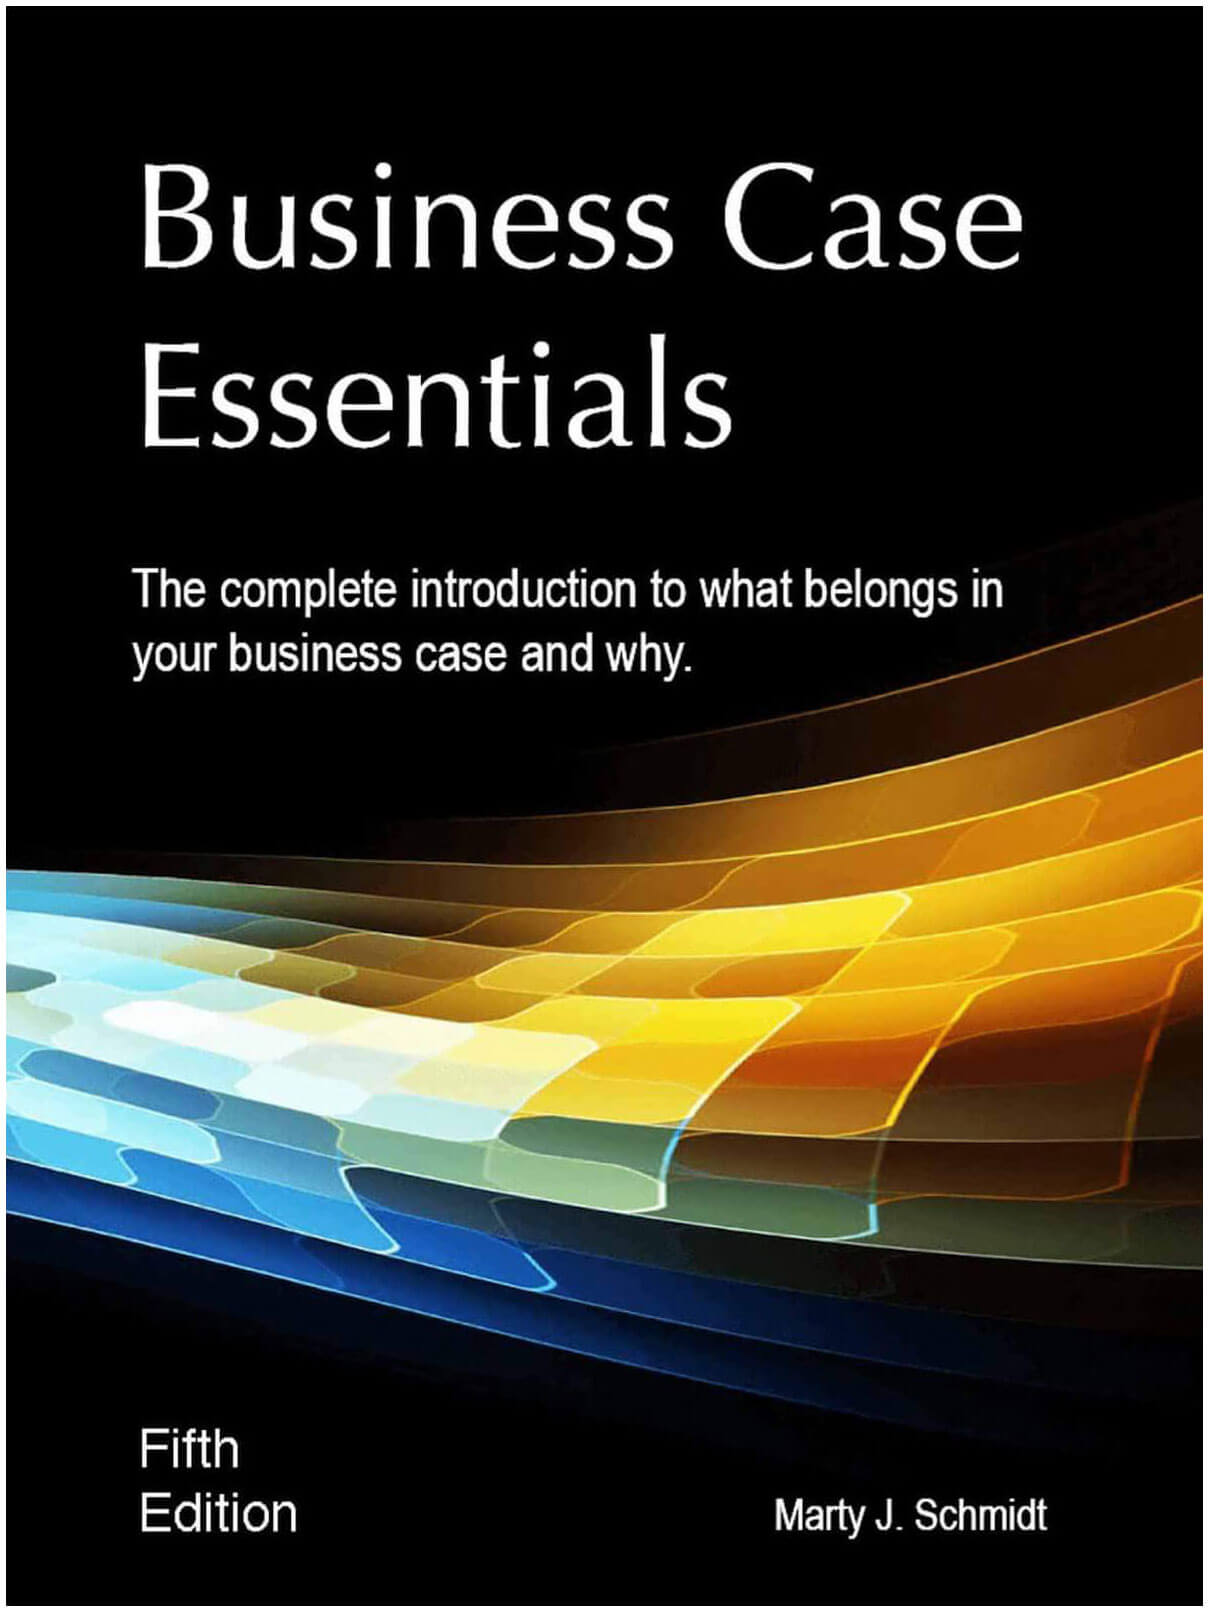 Buy the ebook Business Case Essentials